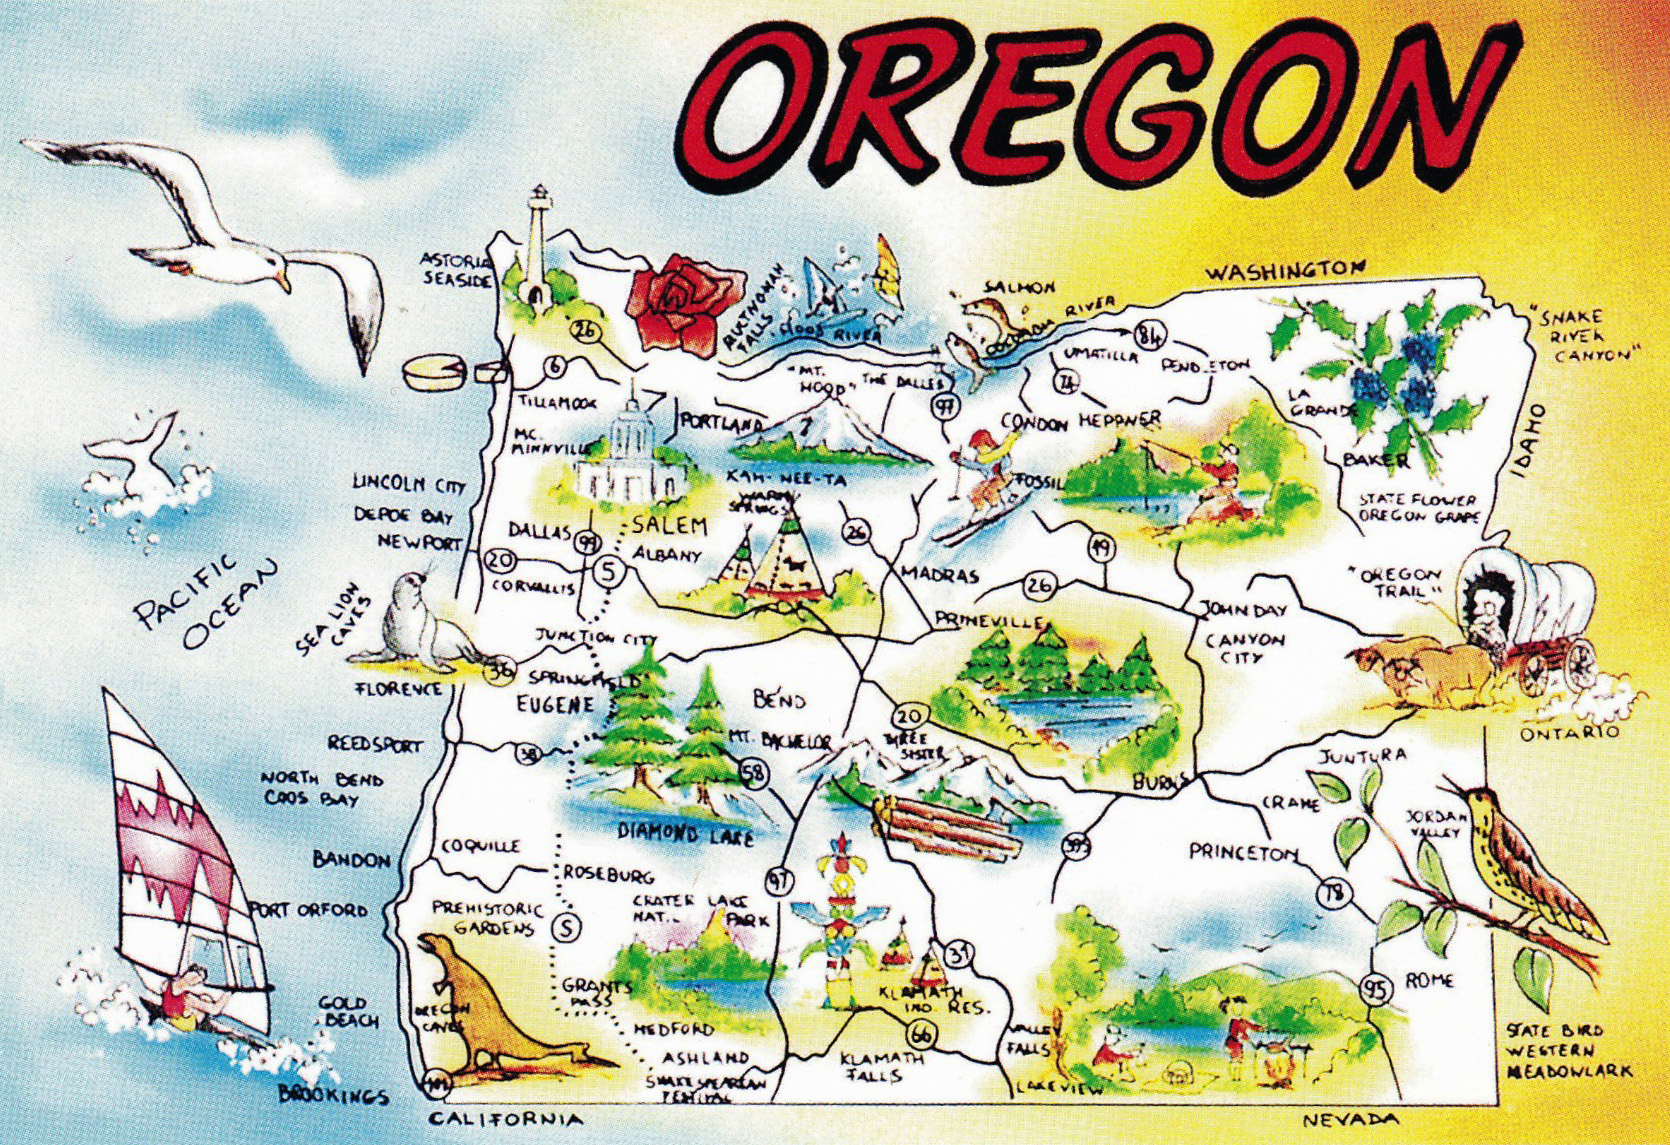 Large tourist illustrated map of Oregon state | Oregon state ... on chattanooga usa map, annapolis usa map, denali usa map, pueblo usa map, willamette river usa map, allentown usa map, florence usa map, richmond usa map, ottawa usa map, spokane usa map, helena usa map, independence usa map, nashville usa map, boston usa map, nh usa map, zoo usa map, cheyenne usa map, wichita usa map, oklahoma city usa map, lexington usa map,